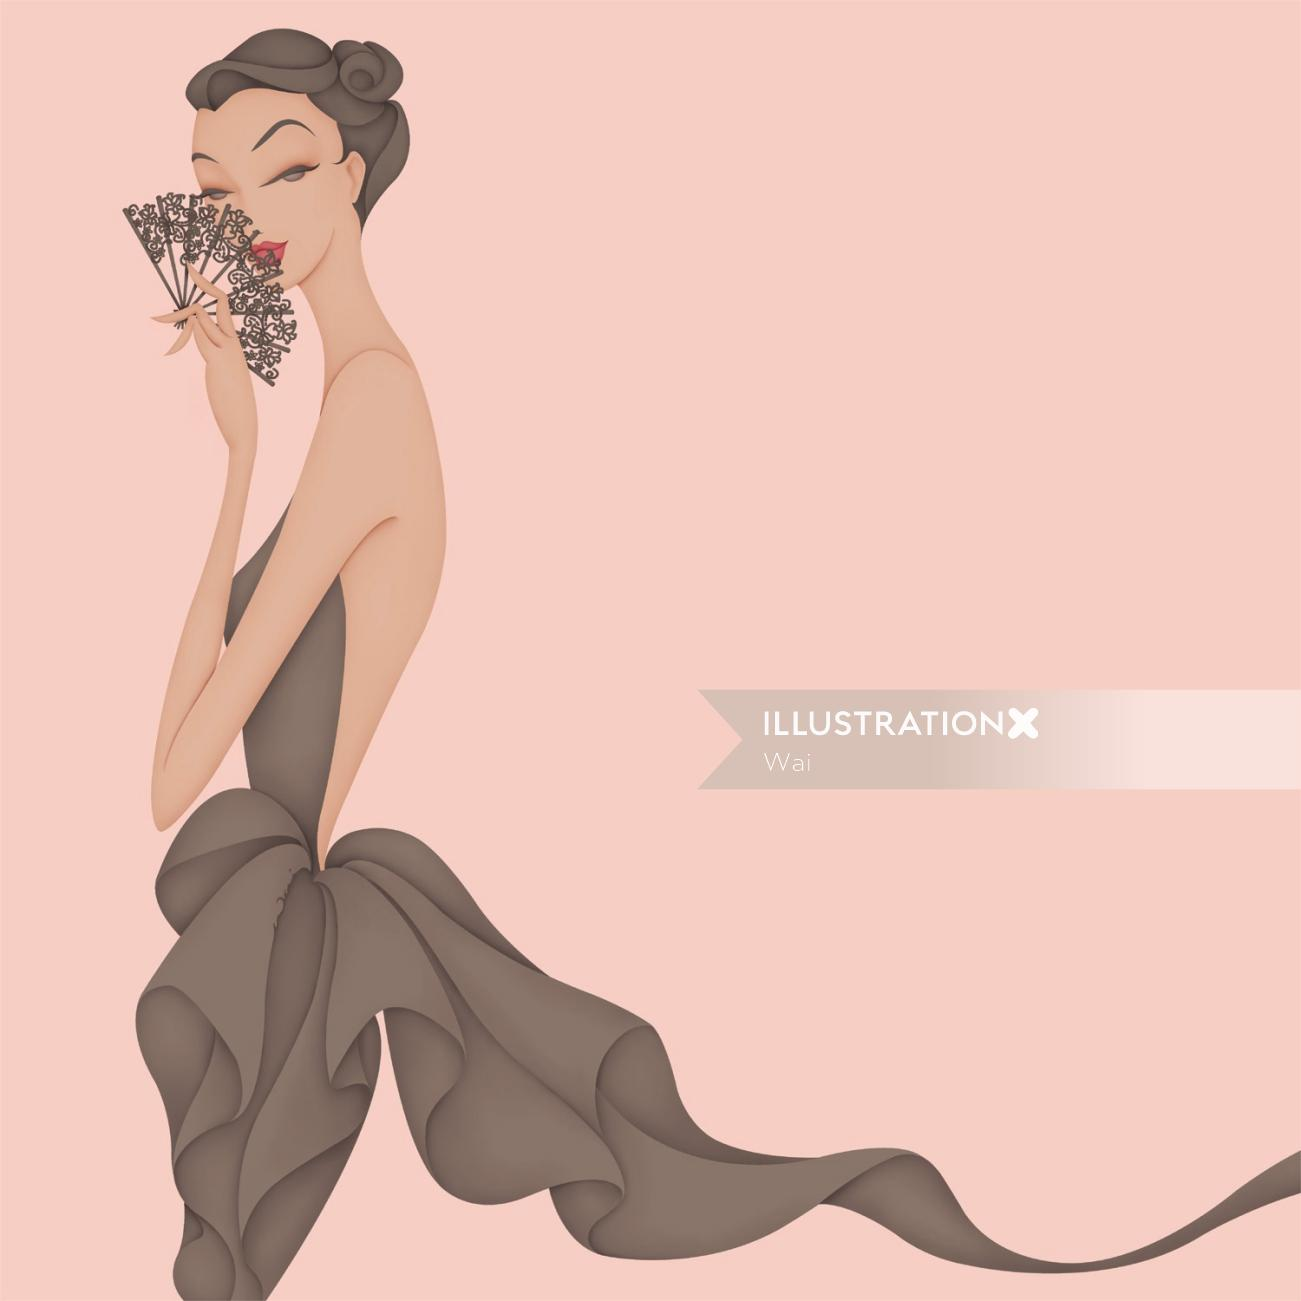 Fashion illustration that was printed onto A6 notepads and distributed for self promotion.